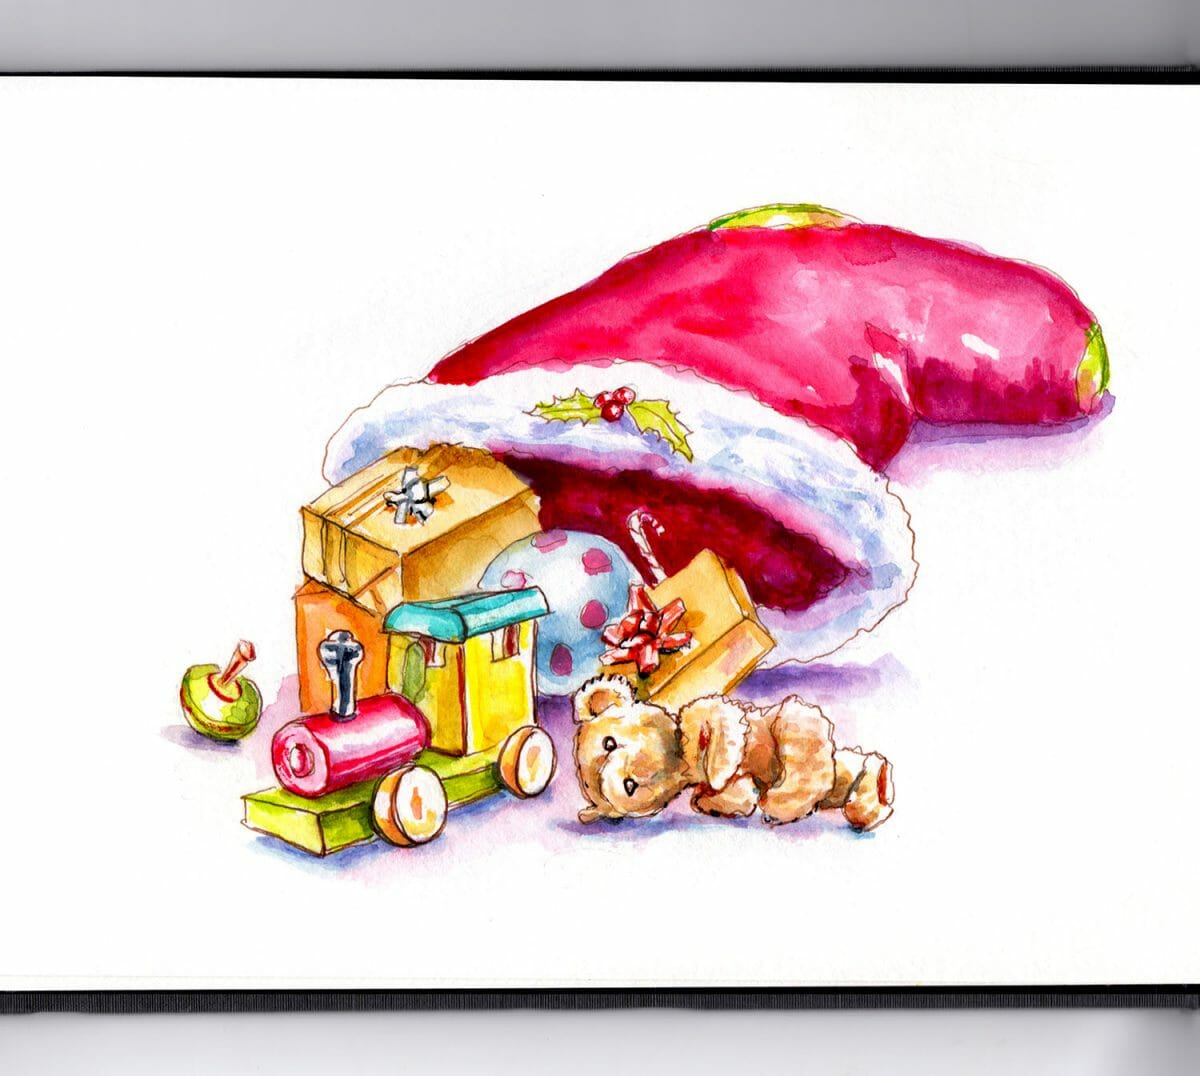 #WorldWatercolorGroup - Day 22 - Christmas Stocking with Toys - Doodlewash